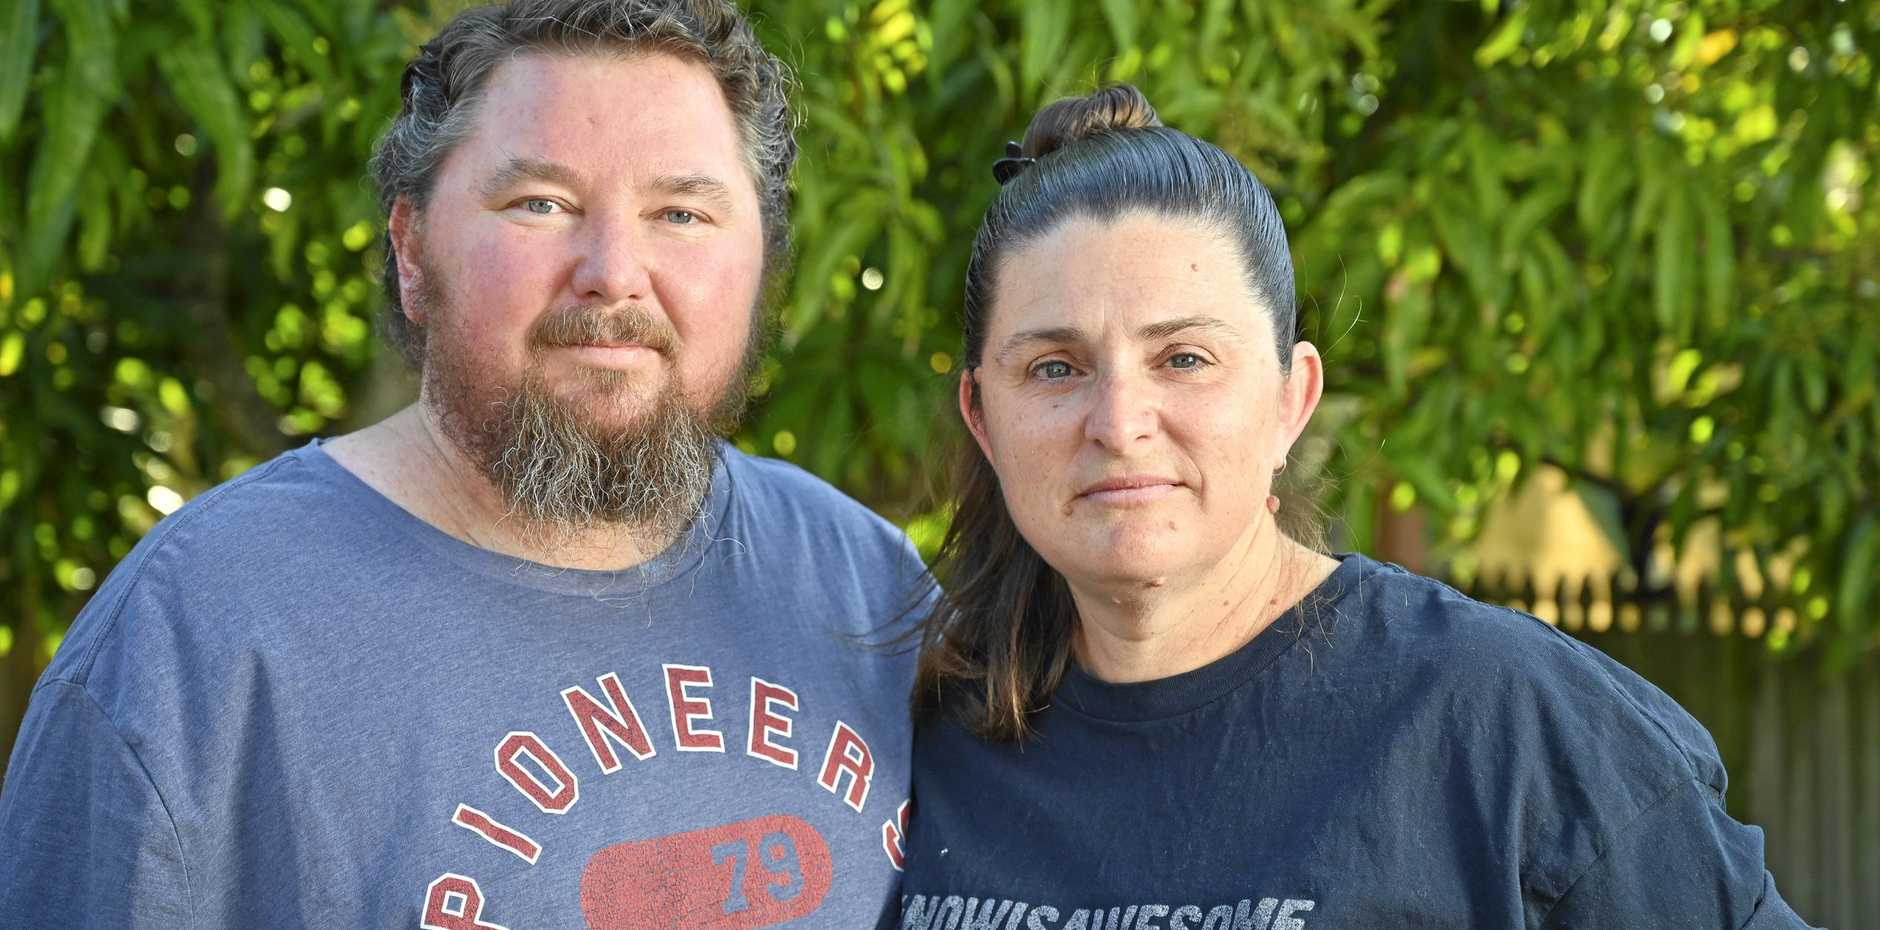 TOUGH TIME: Jamie Hewett, pictured with wife Rebecca, has multiple myeloma a blood cancer.